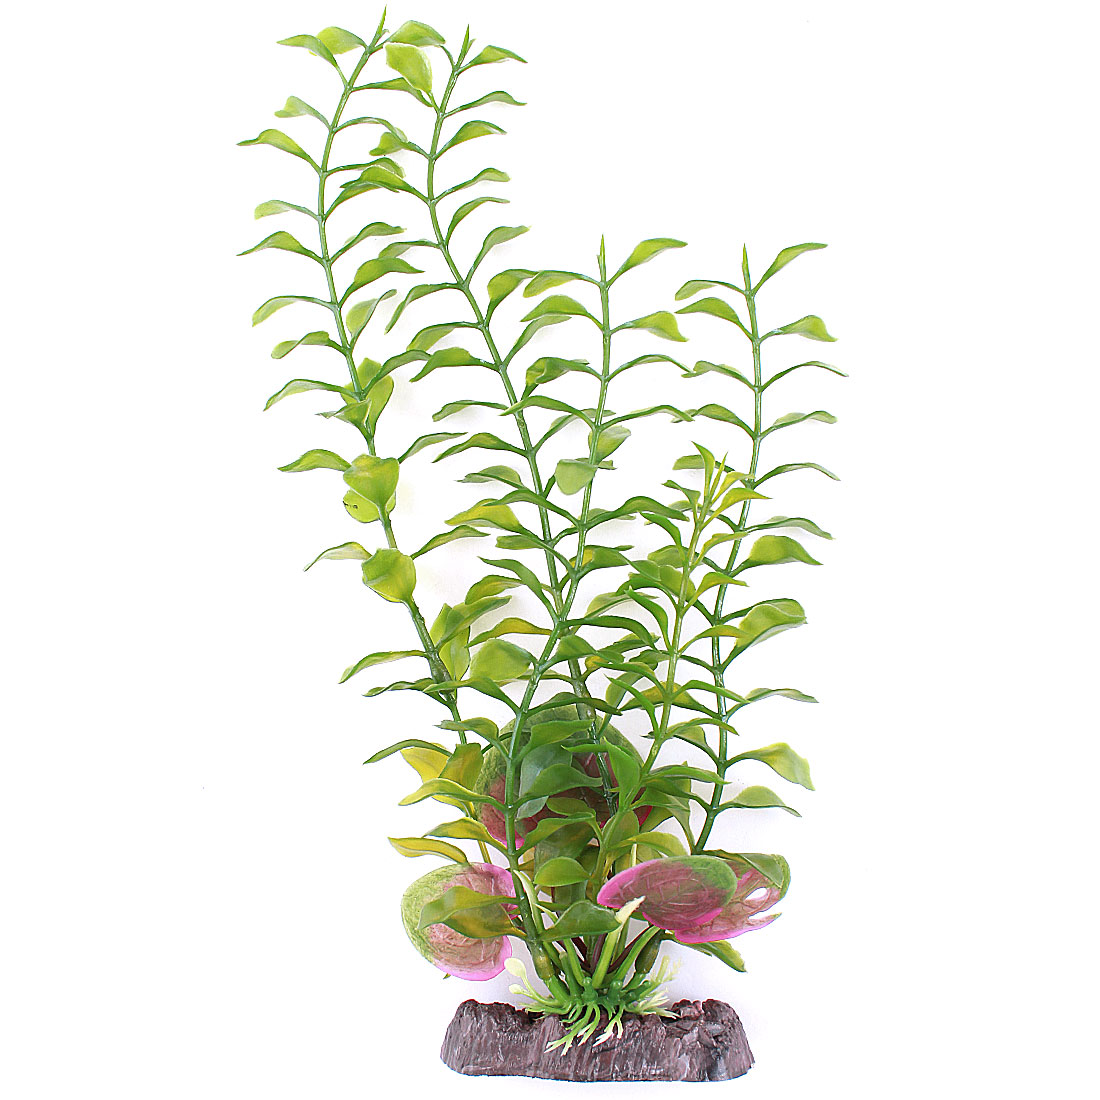 Fish Tank Aquarium Decor 30cm High Green Plastic Artificial Underwater Grass Plant